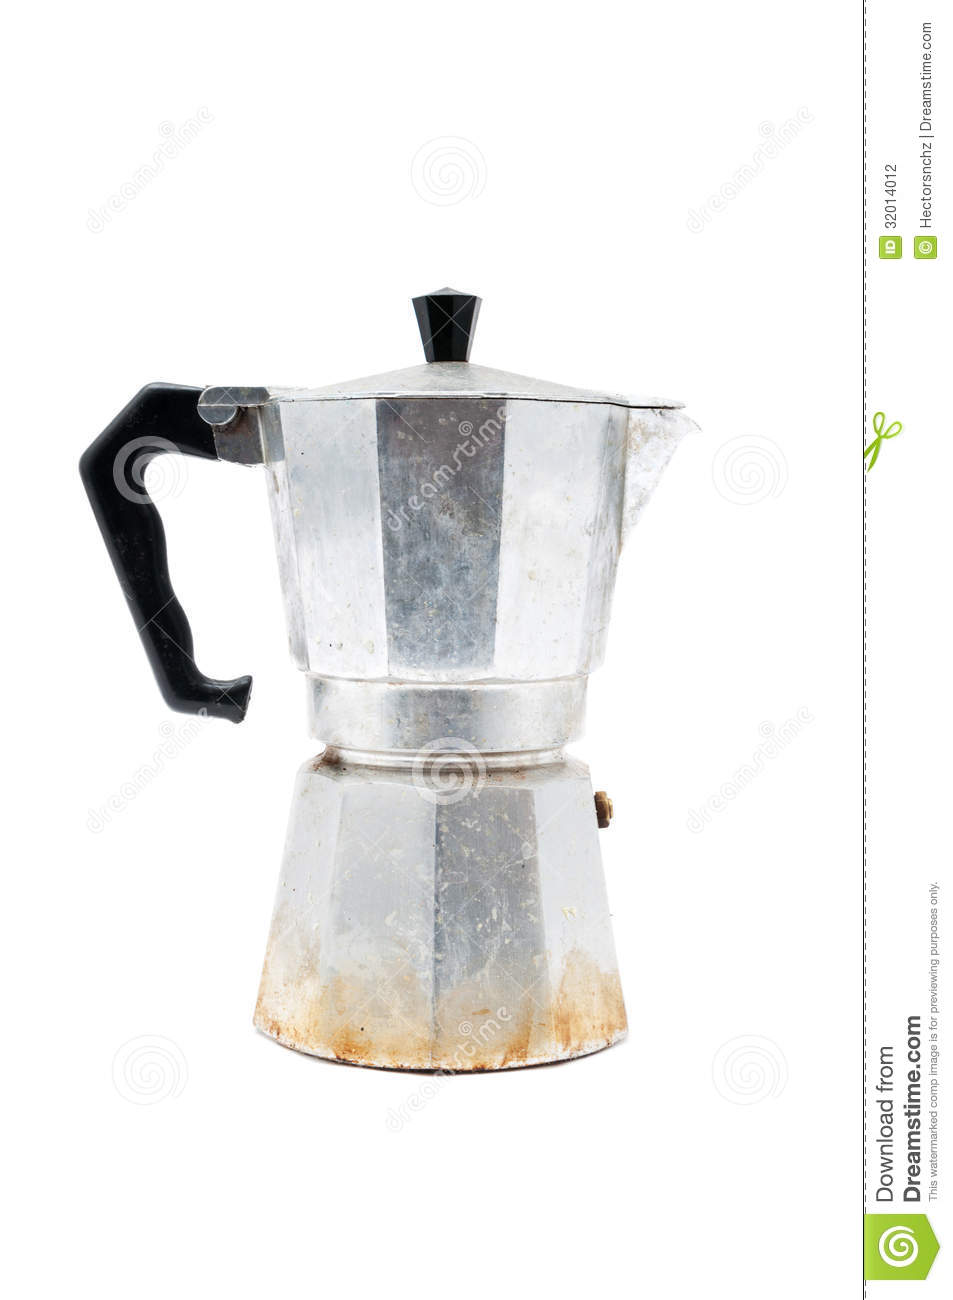 Italian Coffee Maker How To : Italian Coffee Maker Stock Photography - Image: 32014012